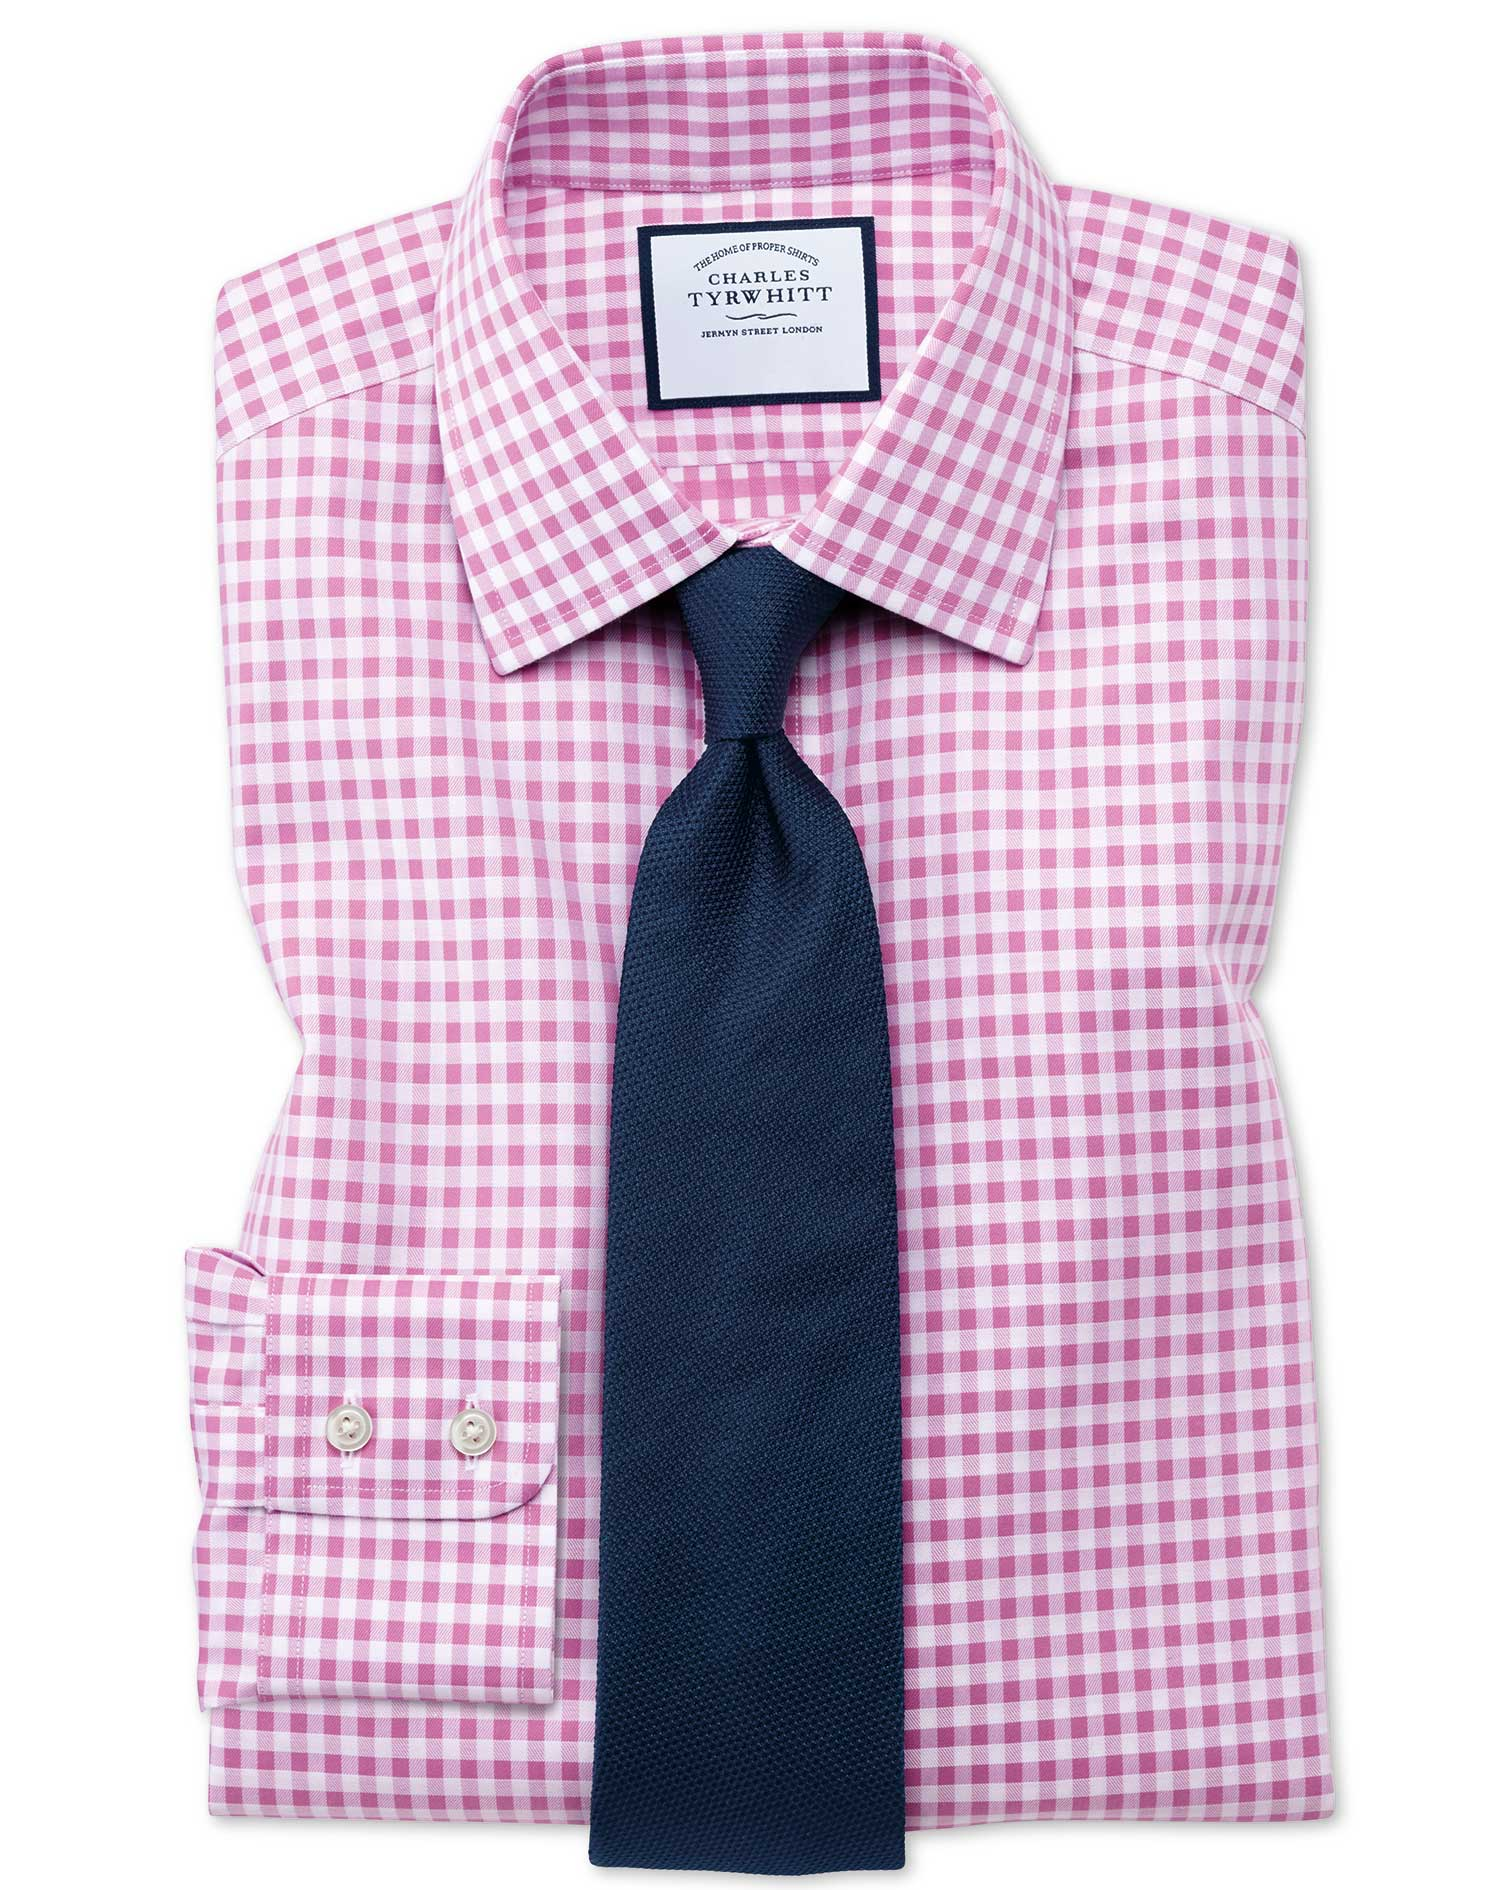 Classic Fit Non Iron Gingham Pink Cotton Formal Shirt Single Cuff Size 17/37 by Charles Tyrwhitt